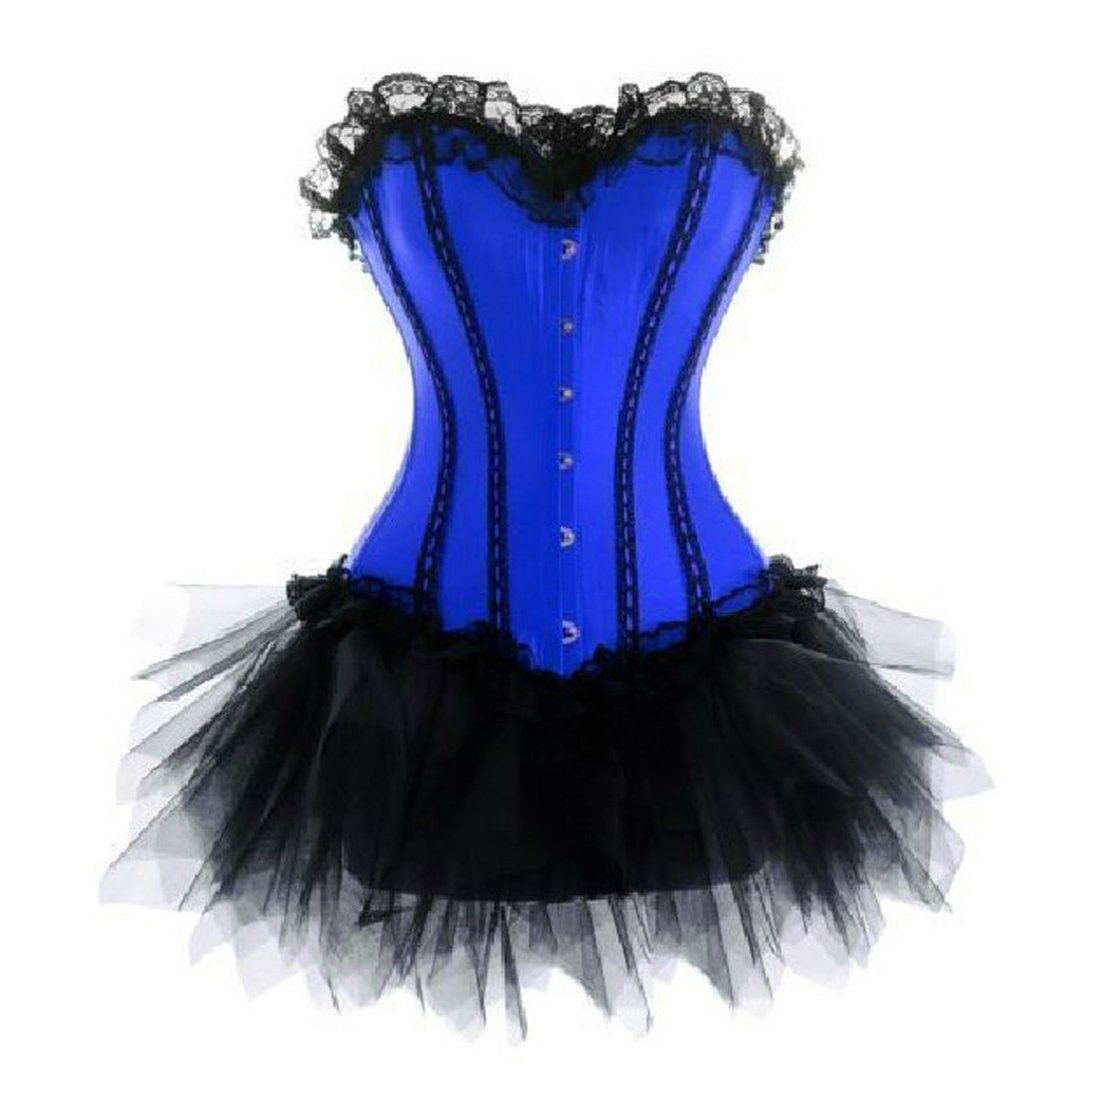 JL Corset Wedding Lace up Boned Trim FANCY DRESS Corset & Tutu GUK-036+7008